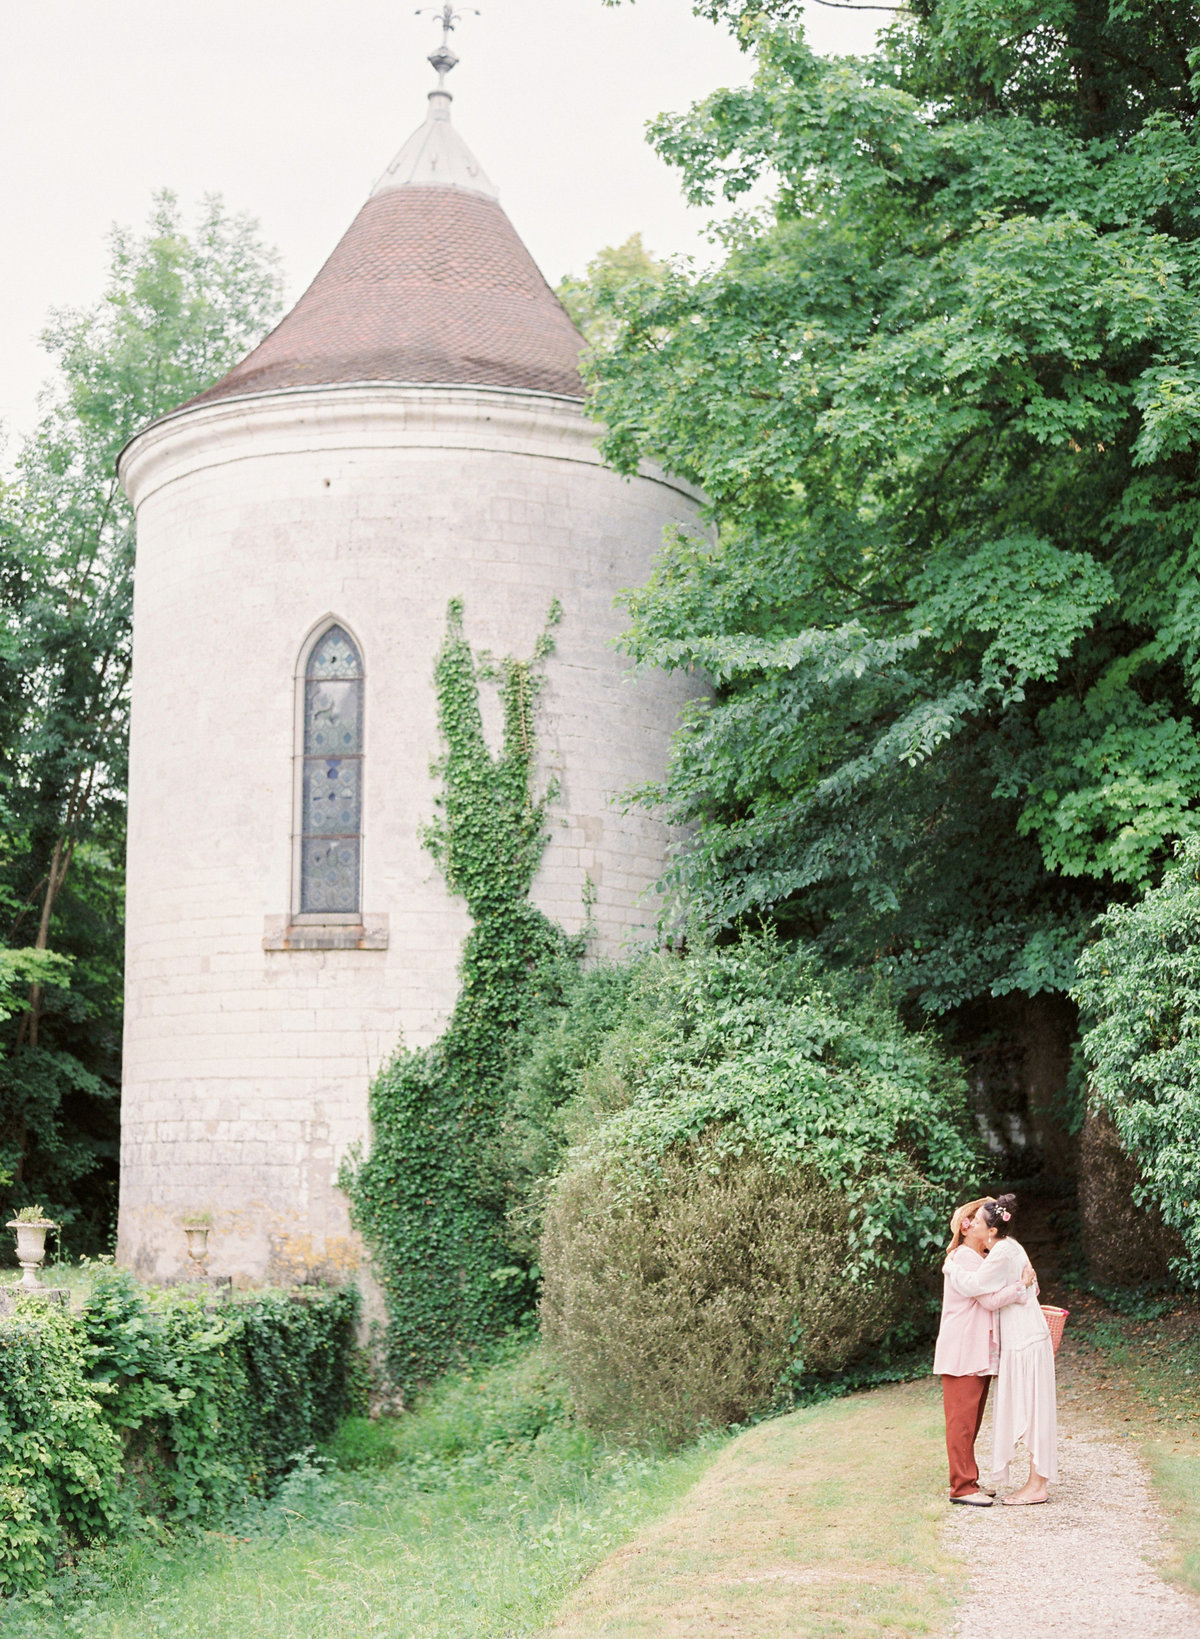 Intimate french champagne chateau wedding amelia soegijono0013